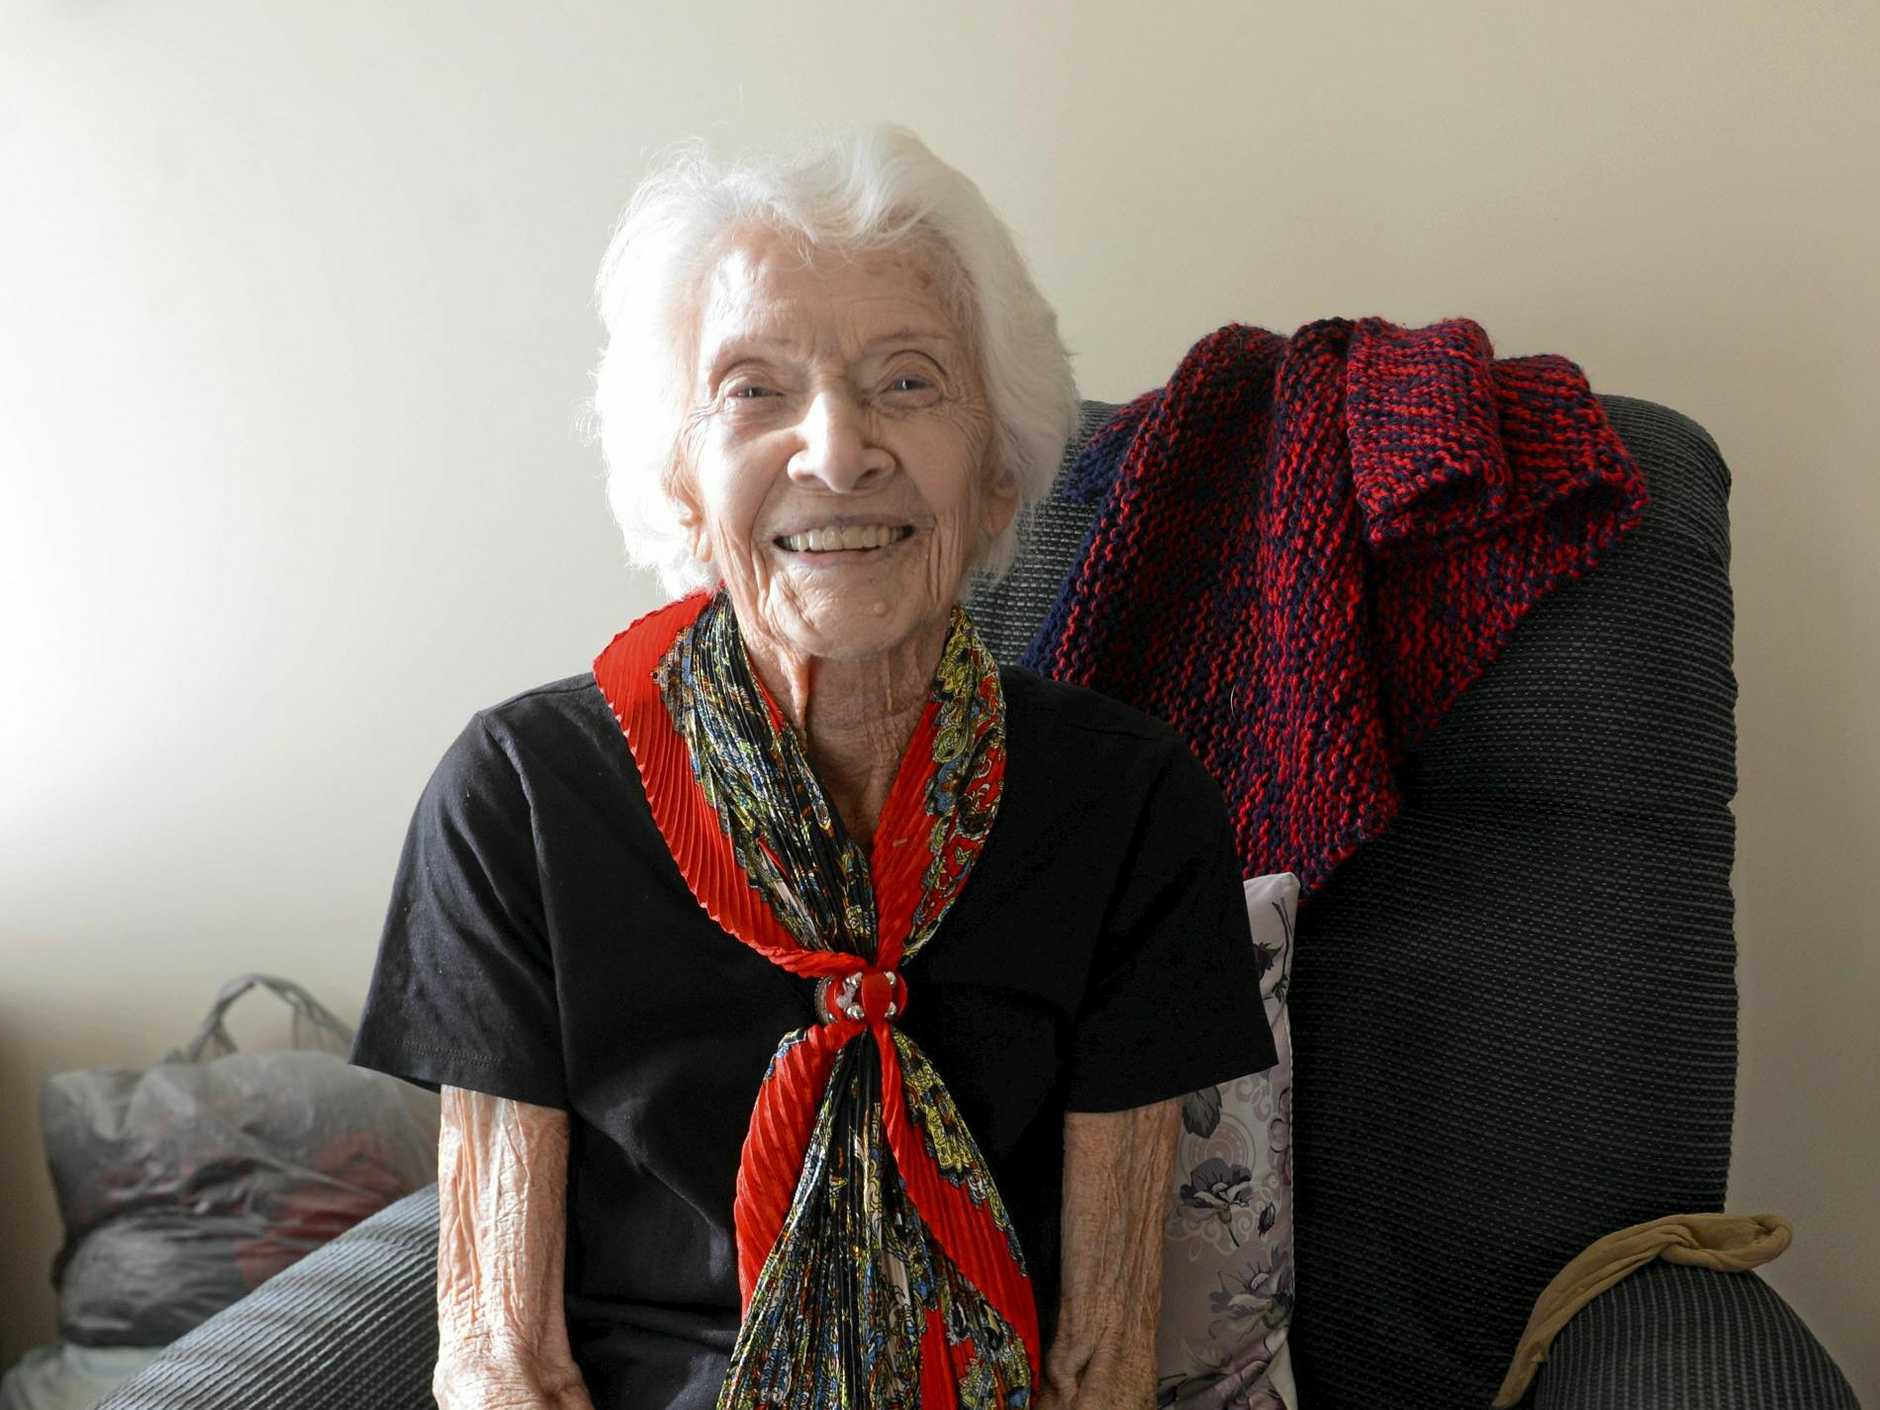 PLENTY OF STORIES: Winifred Matilda Chevalley is celebrating her 106th birthday this month.